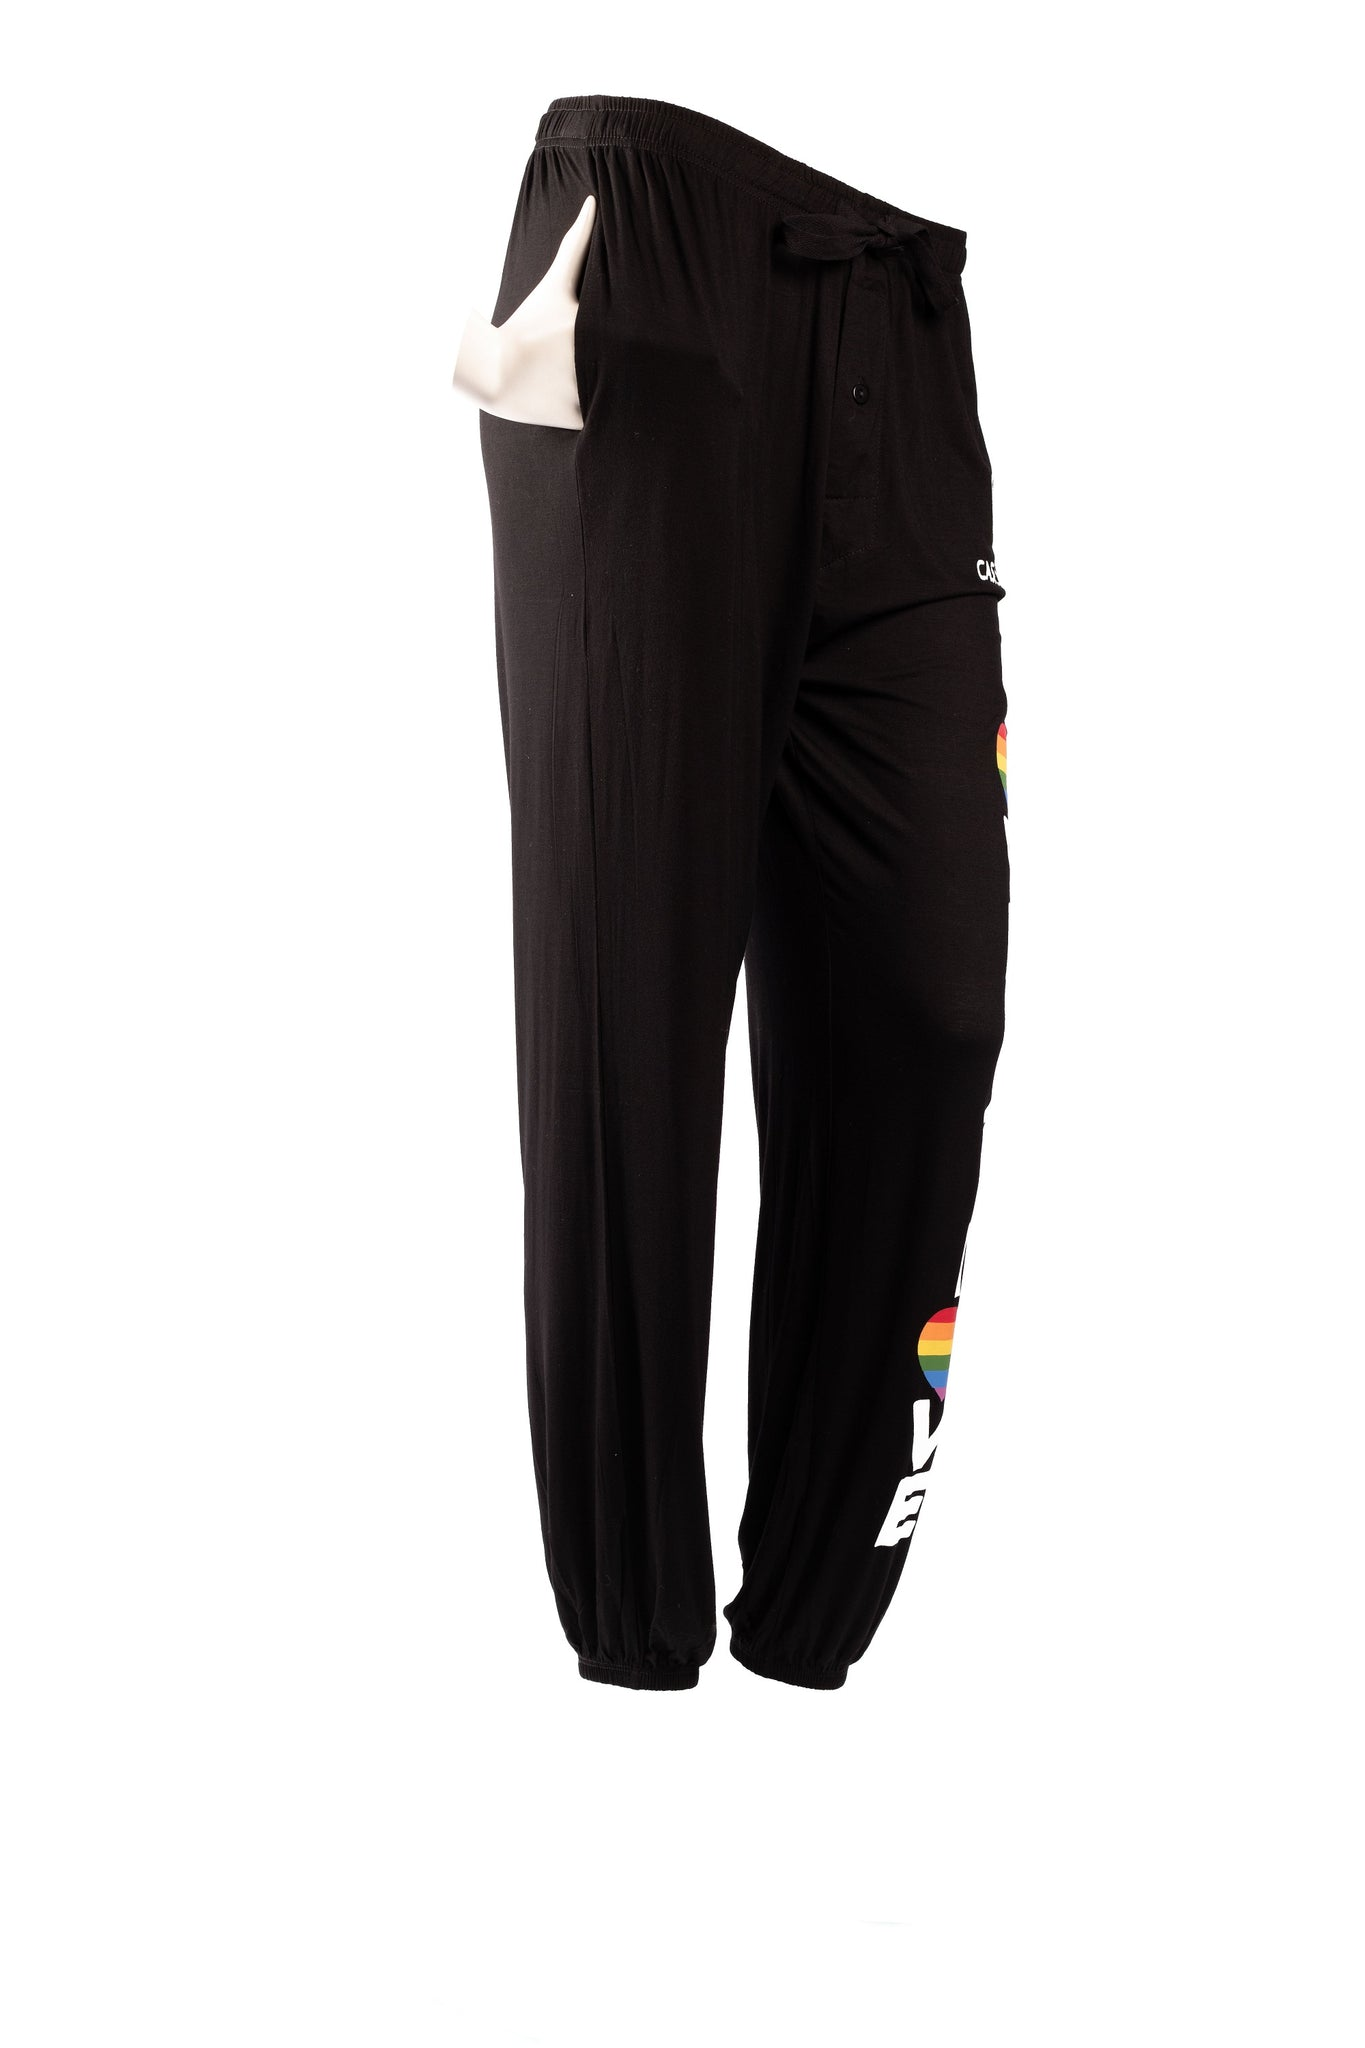 Men & Womens Love is Love Jogger Style Pajama Bottoms with Pockets by Casual Daddy! - Casual Daddy